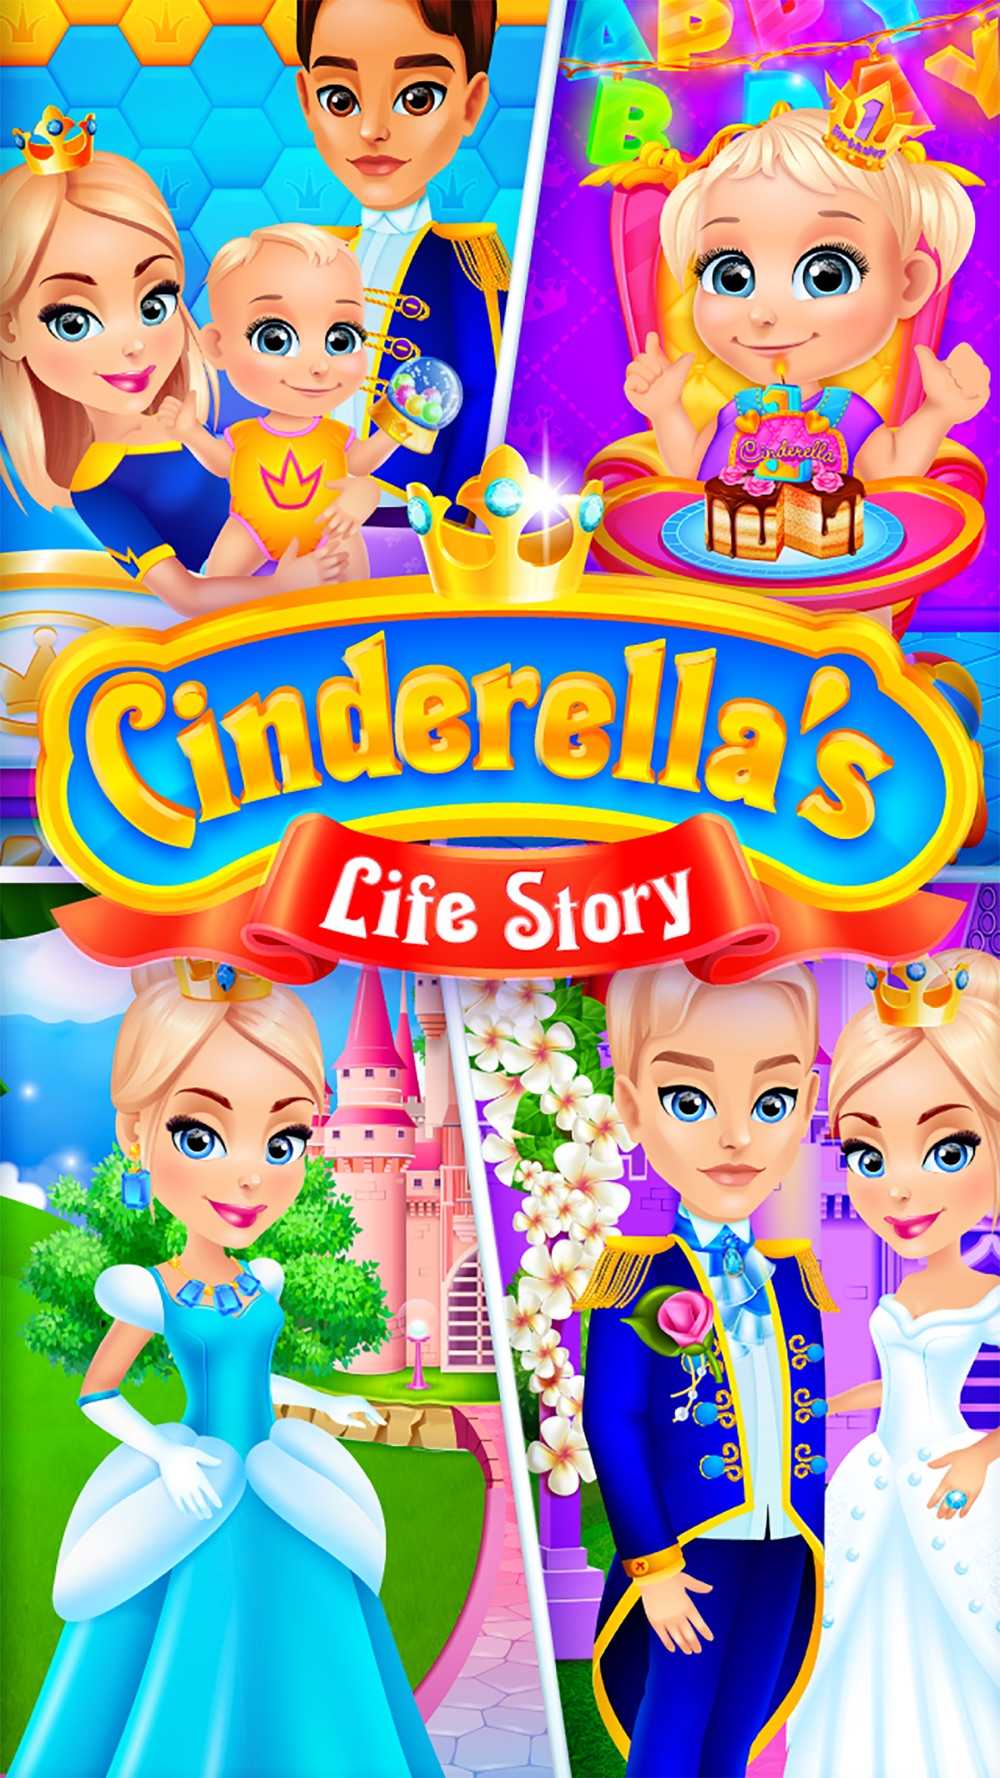 Cinderella's Life Story – Fairy Tale & Girls Games Cheat Codes